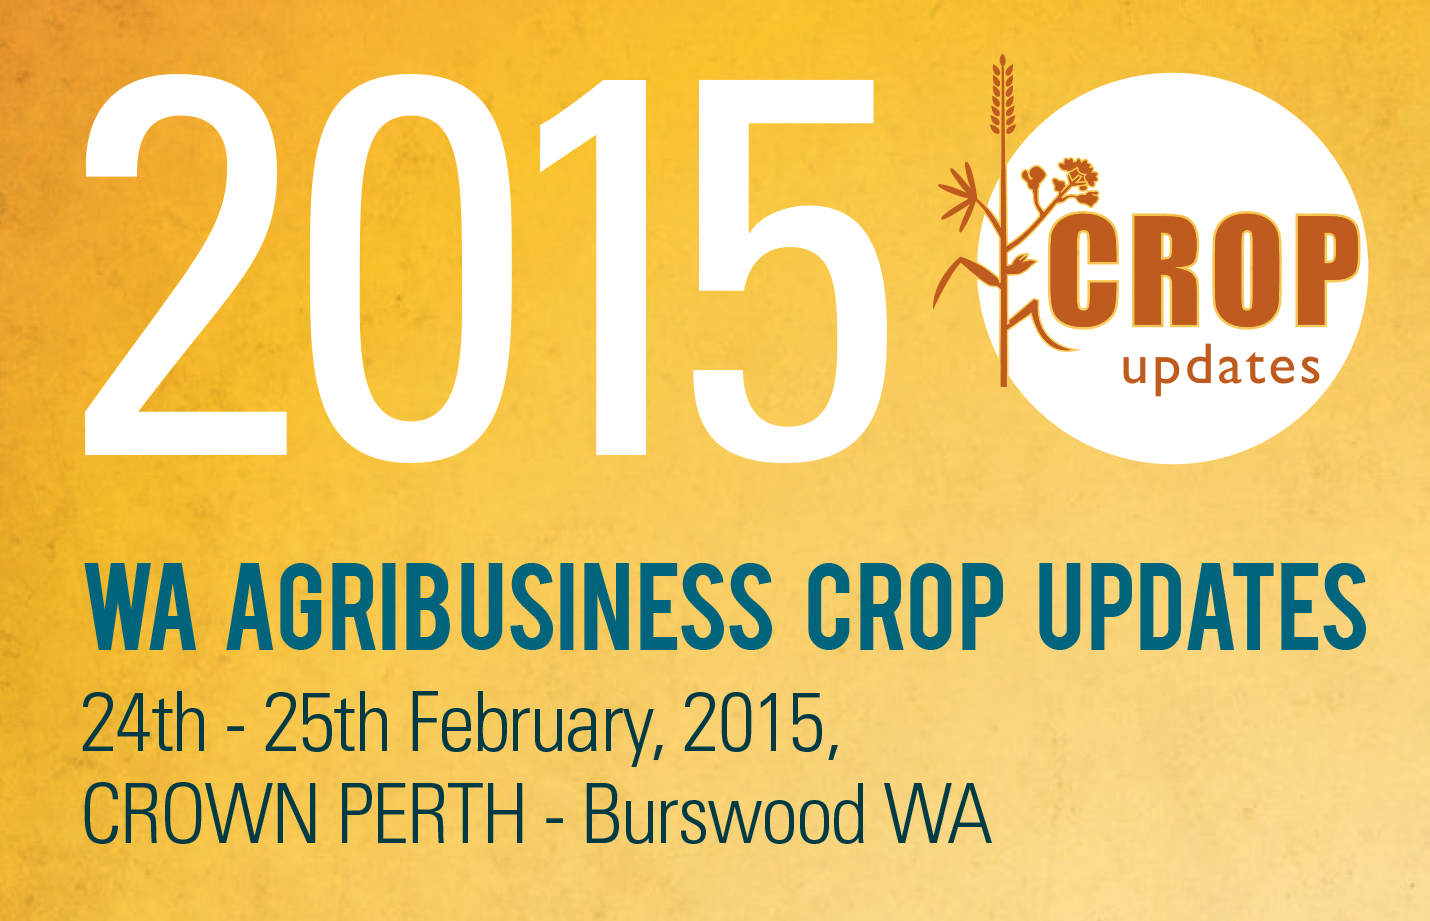 Registrations now open for premier grains event